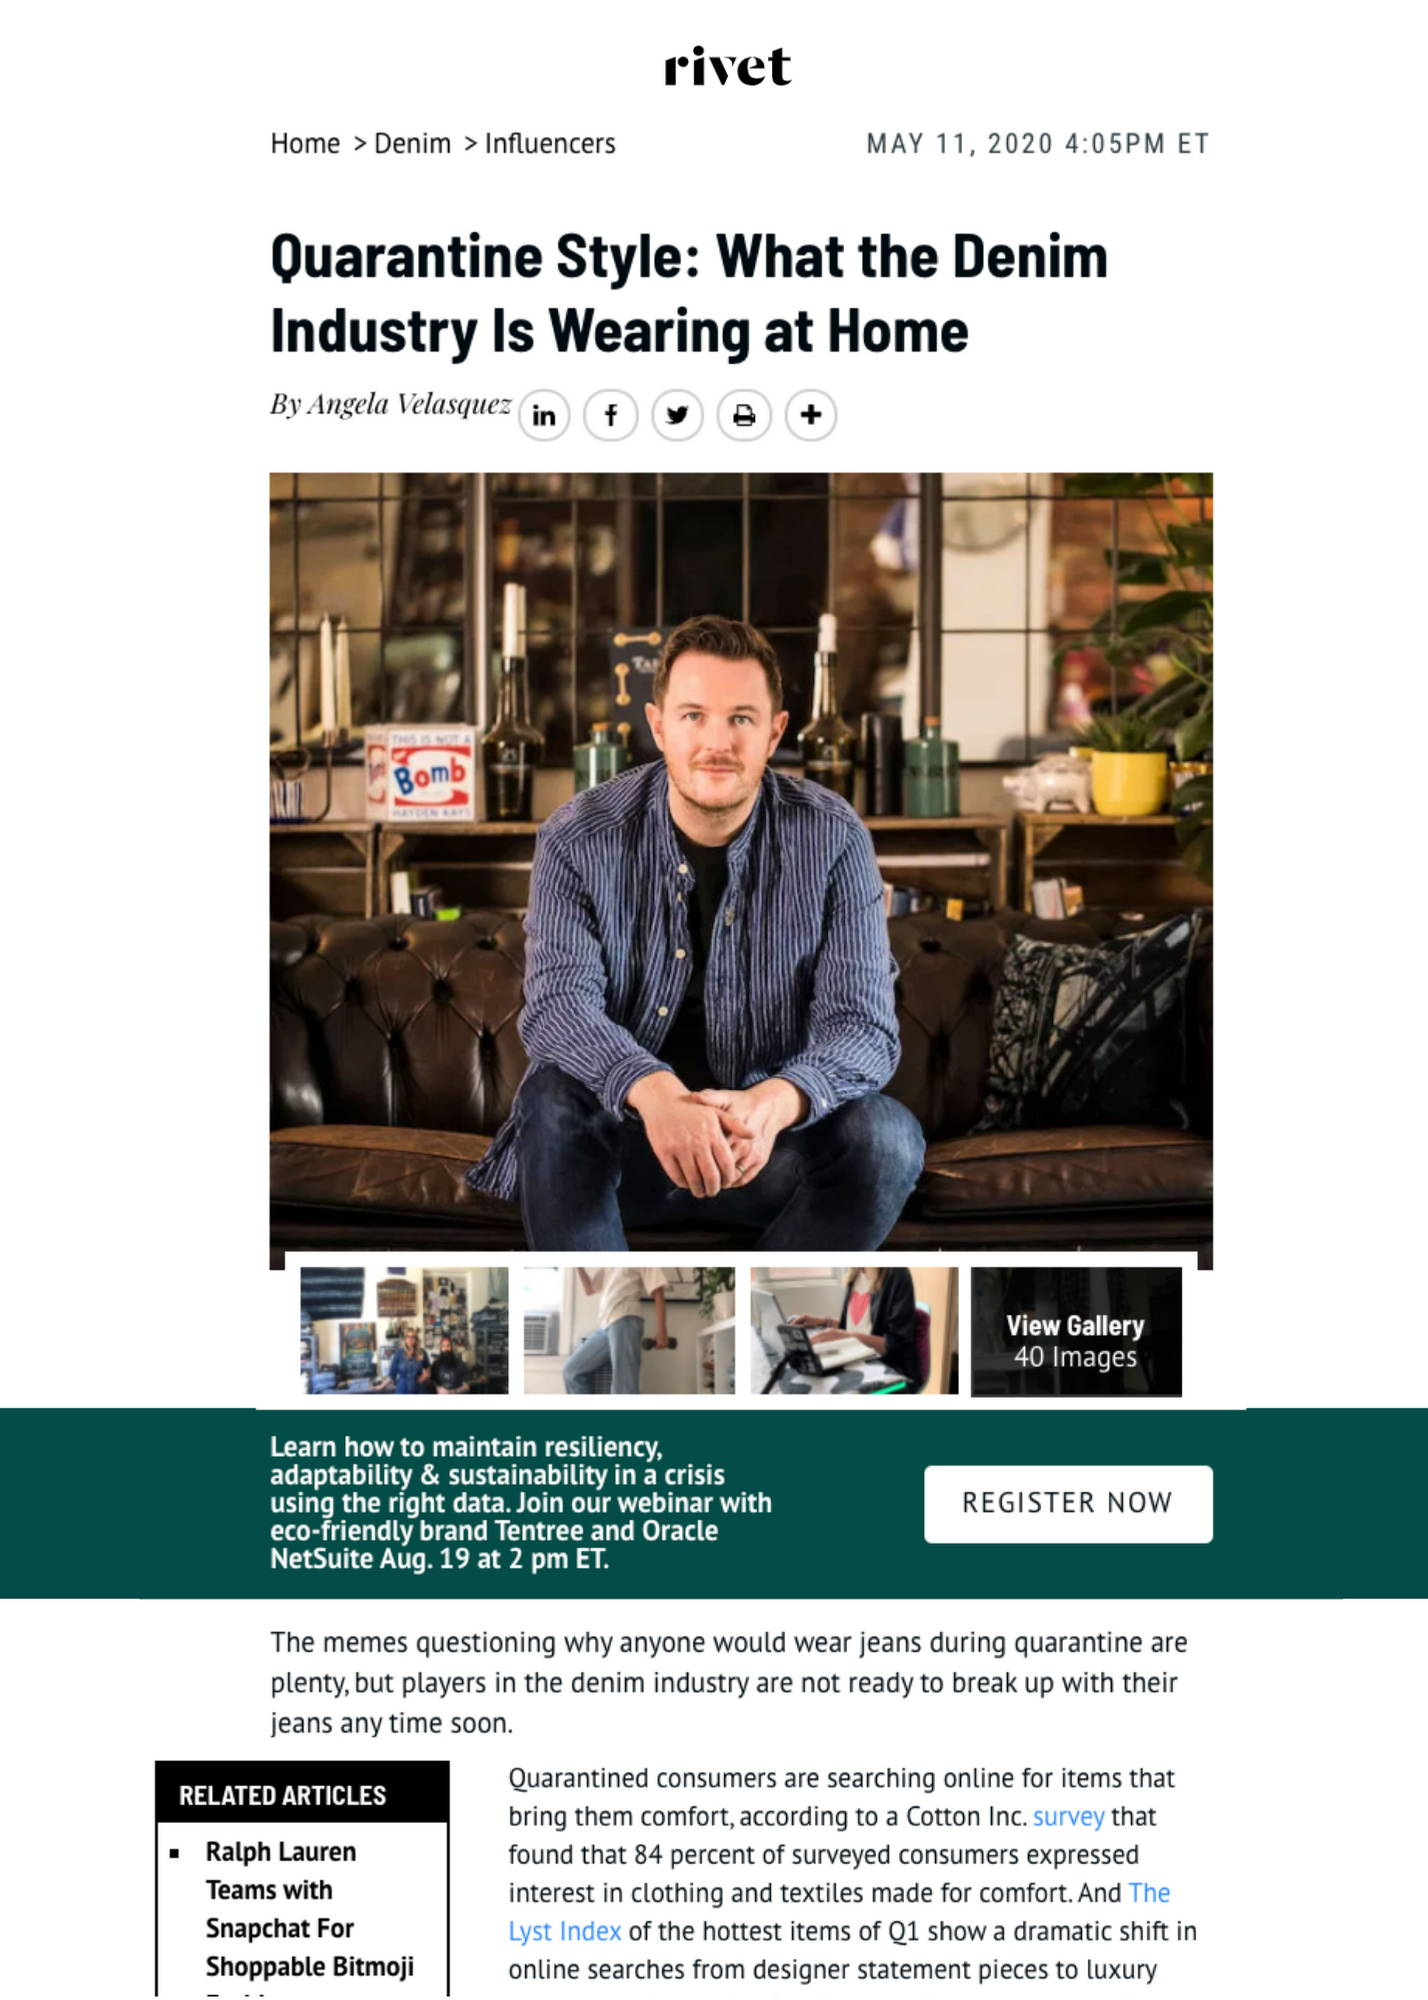 Quarantine Style: What the Denim Industry Is Wearing at Home Article